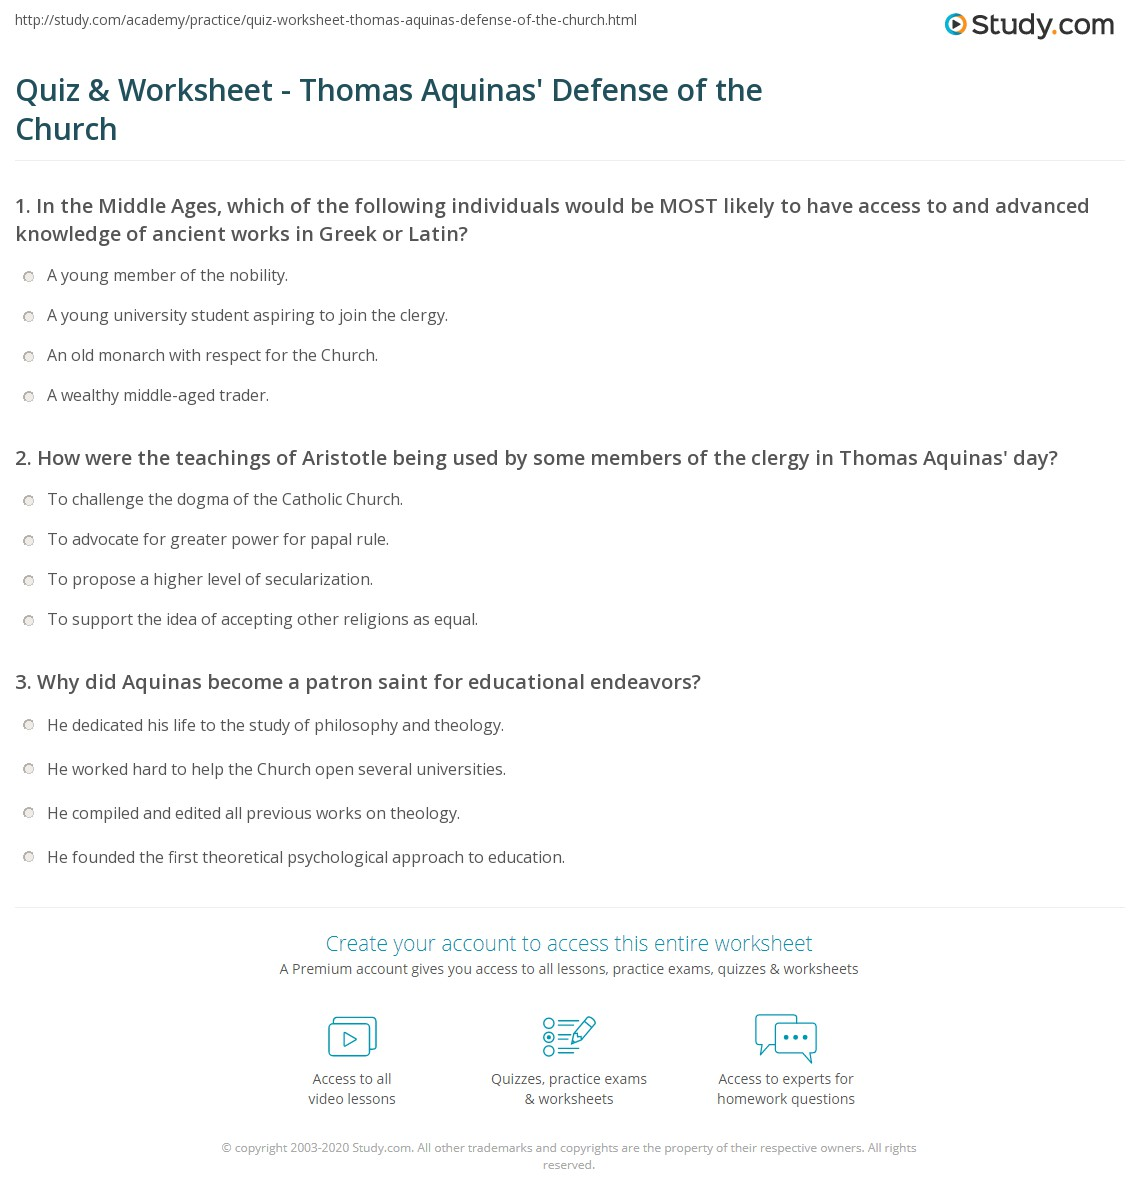 Quiz Worksheet Thomas Aquinas Defense Of The Church Study Com